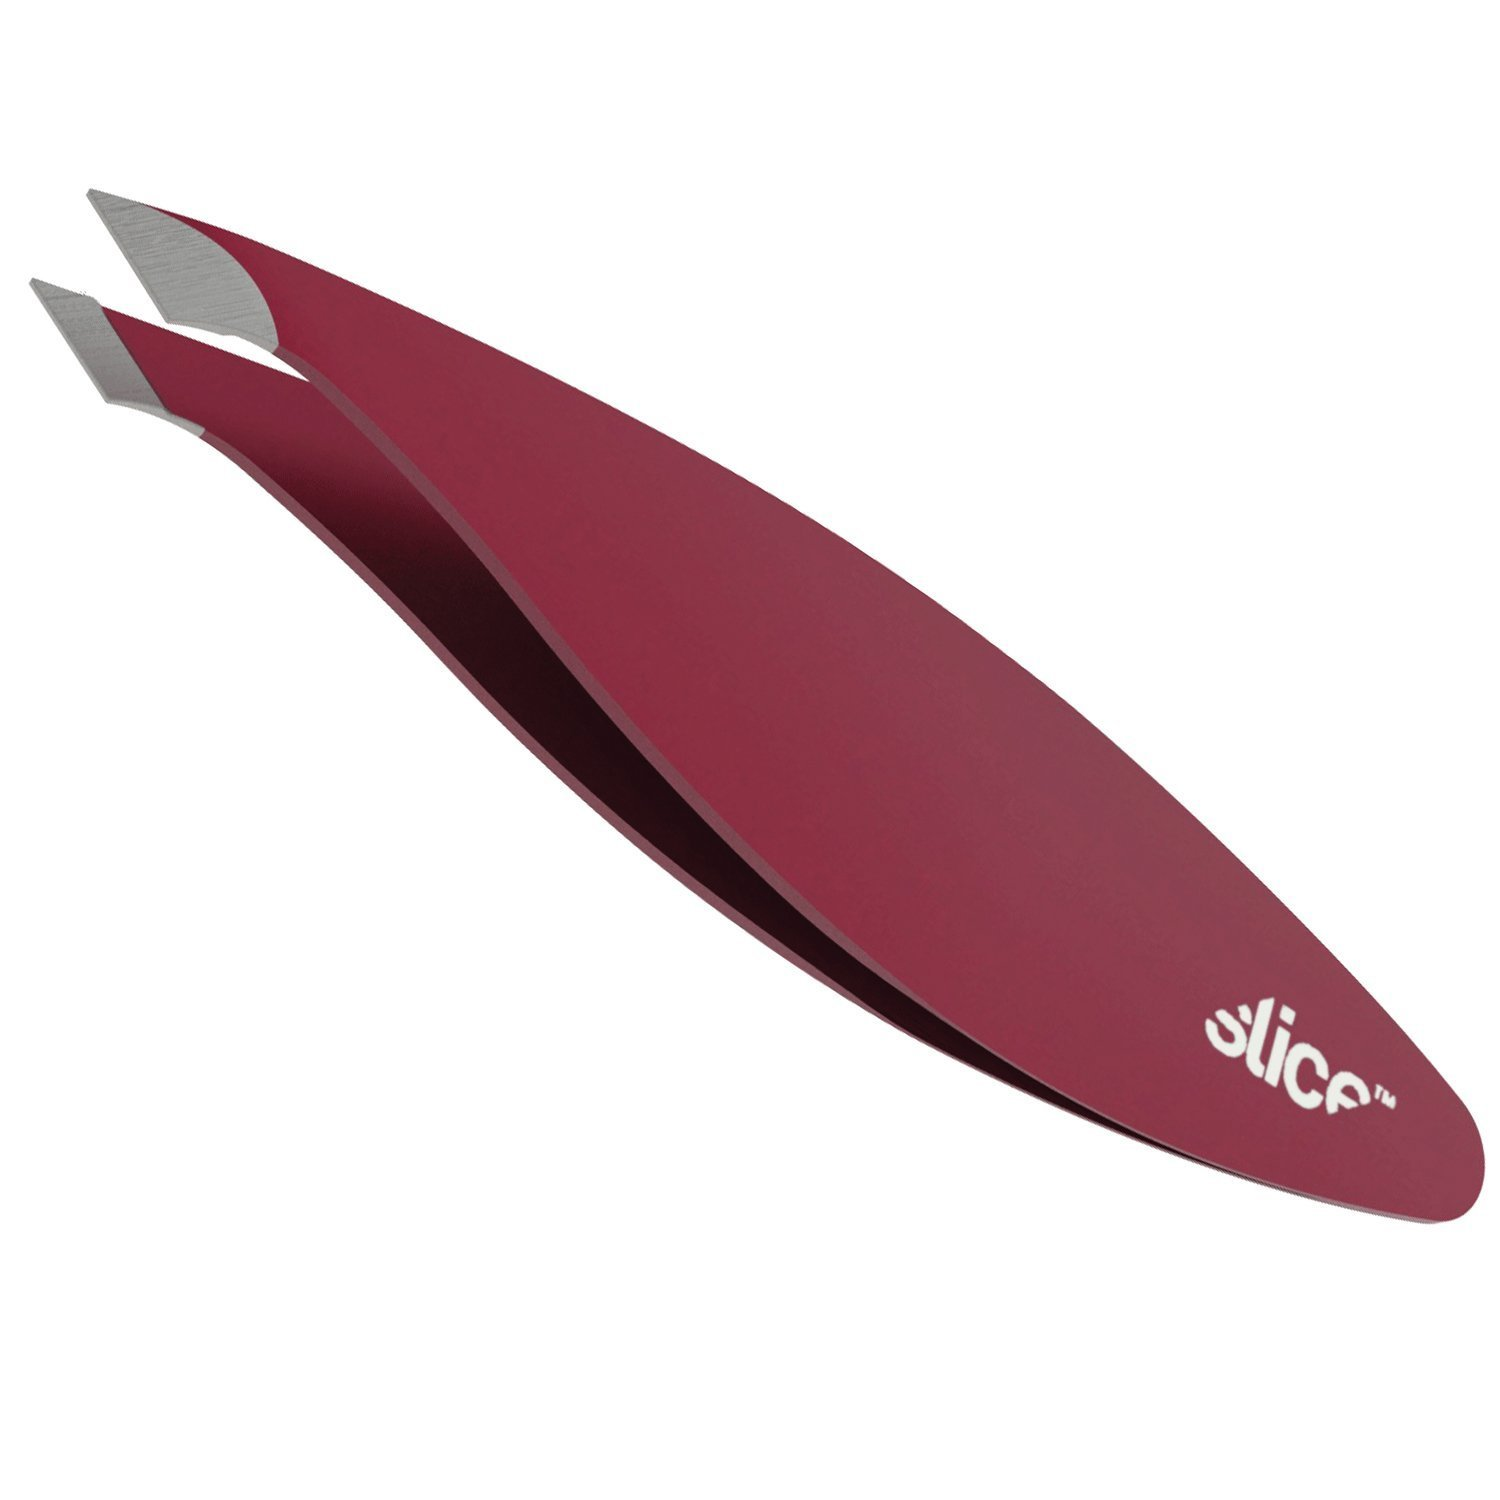 Slice 10457 Combo Tip Tweezer, Slanted & Pointed, For Fine Hair & Eyebrow Design, Extra Wide Grip, Red, 6 Pack